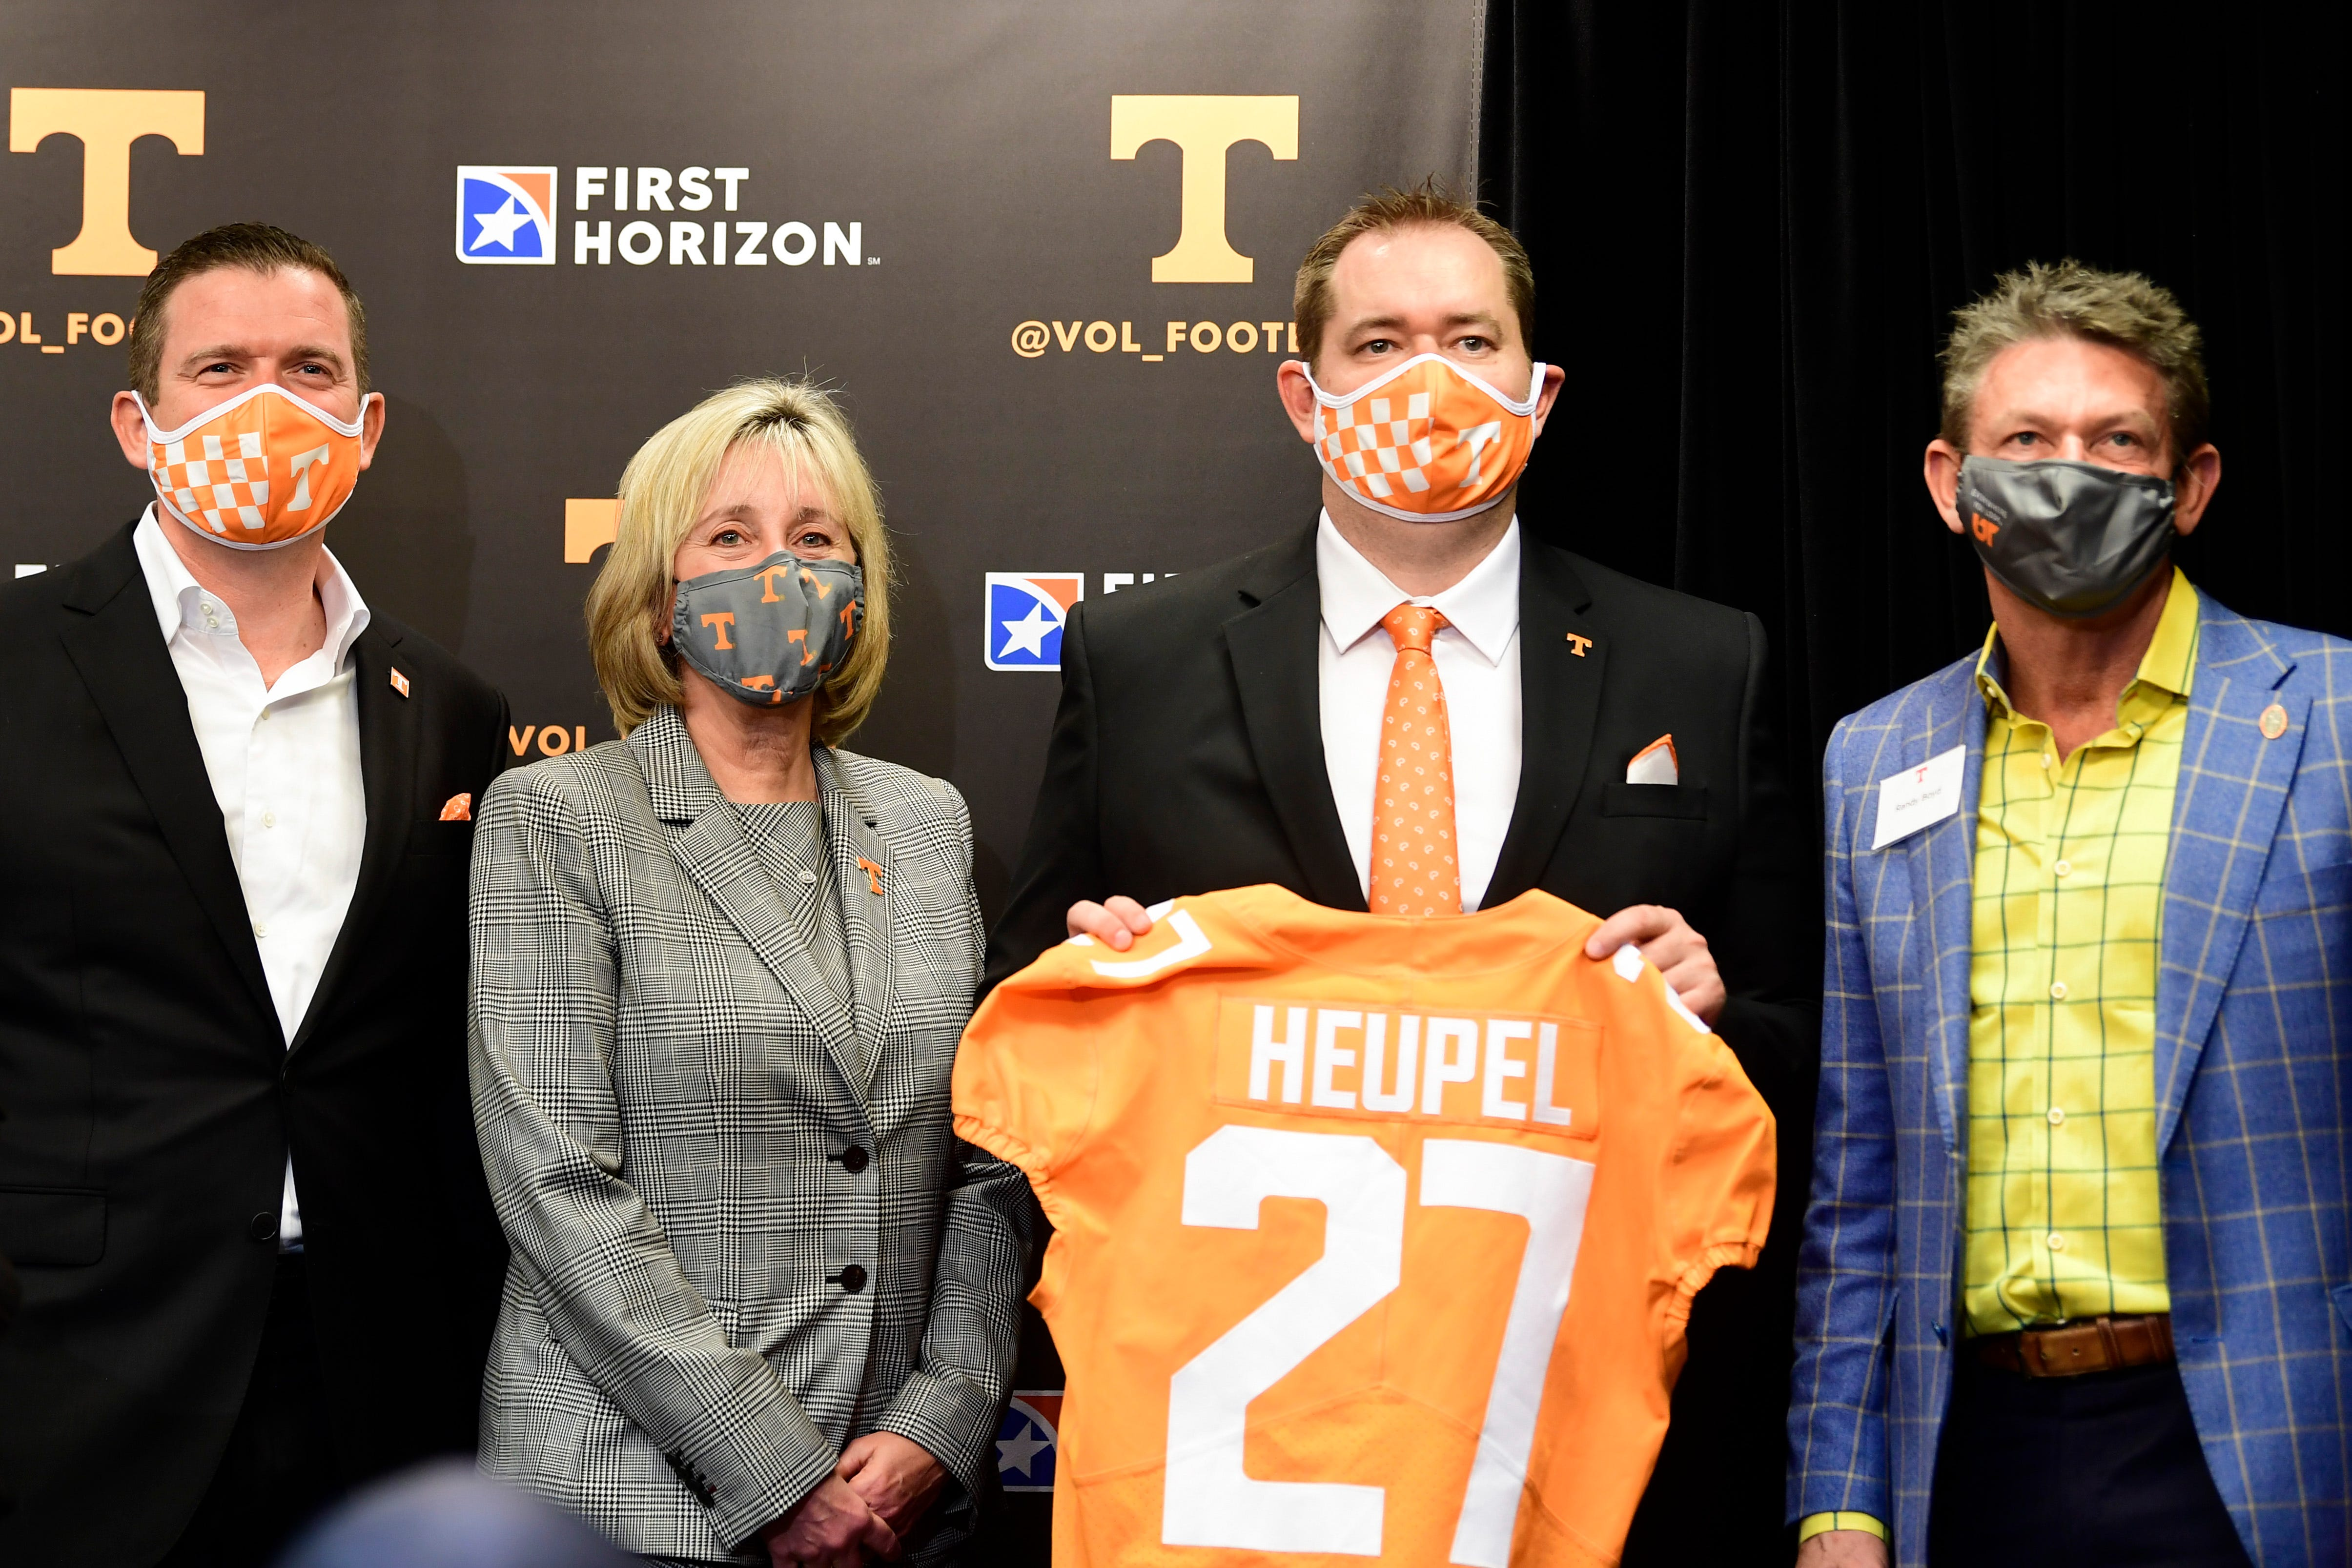 Donde Plowman was determined to make a fast hire for athletics director to keep the process from jumping the tracks. She turned around the hire of new athletics director Danny White in three days, and White hired football coach Josh Heupel within a week. White (from left), Plowman, Heupel and UT System President Randy Boyd gather after the press conference introducing Heupel on Jan. 27, 2021, at Neyland Stadium.